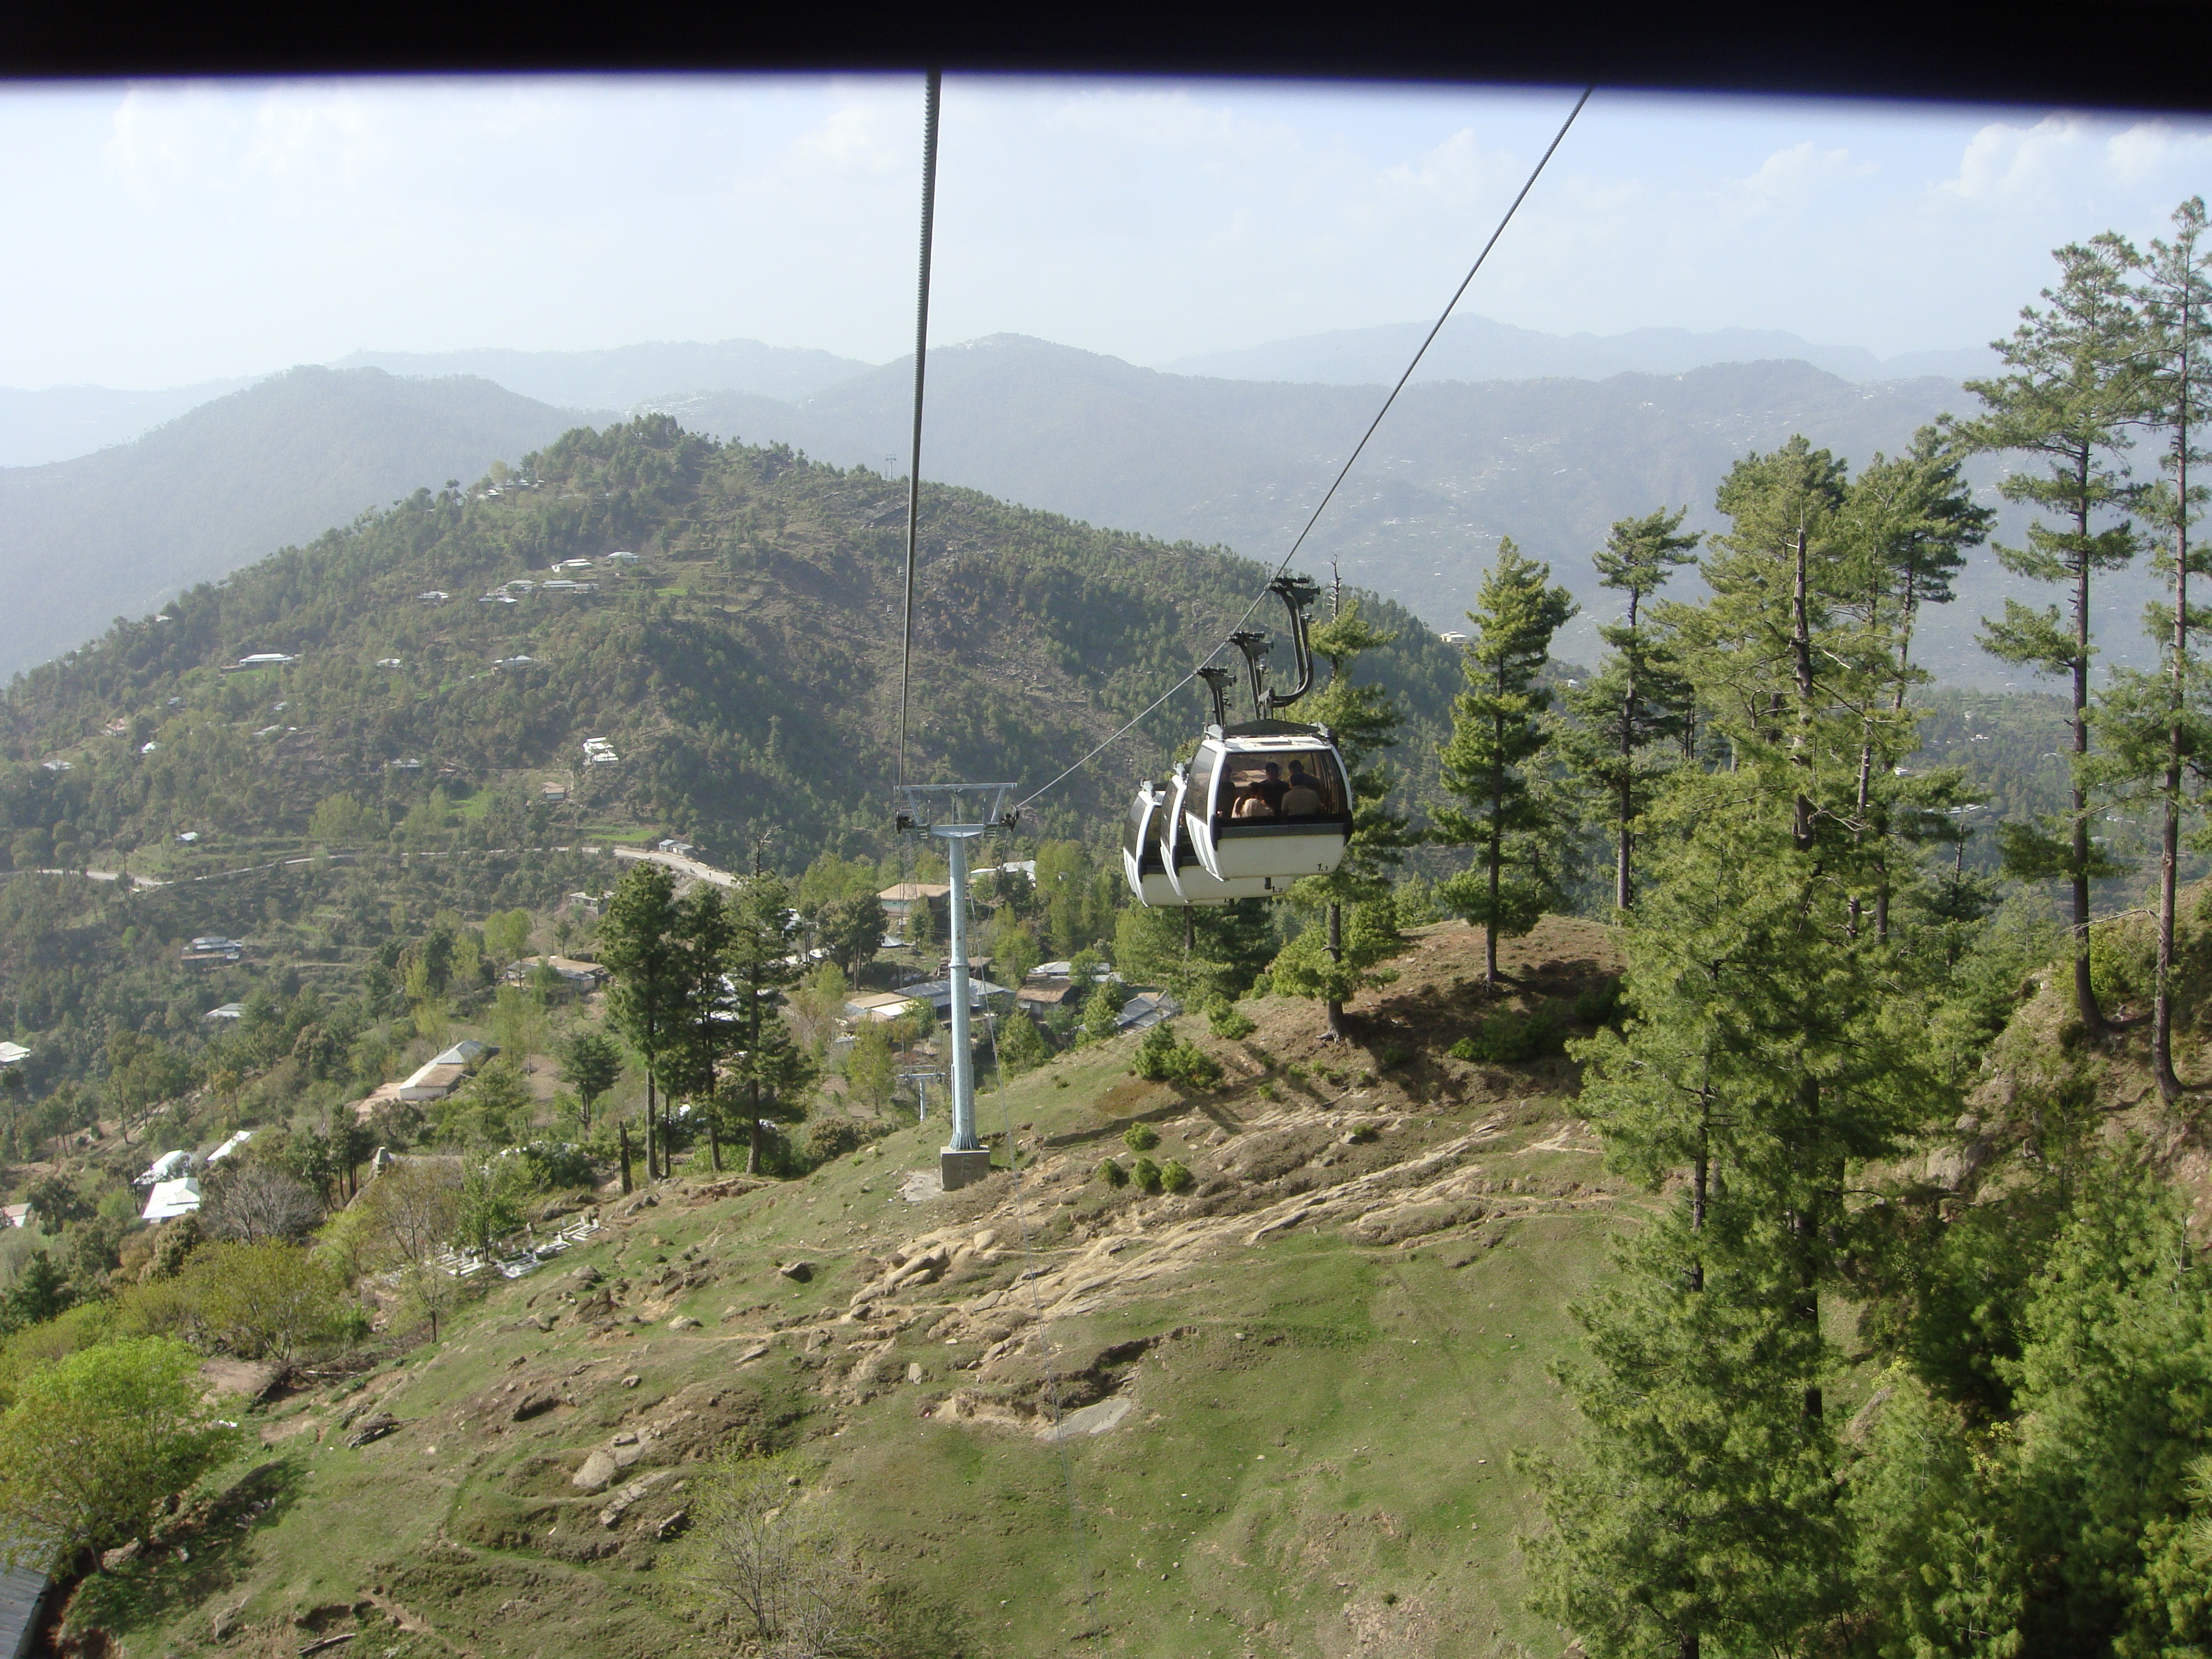 File:Patriata Murree View from Cable Car 2 jpg - Wikimedia Commons